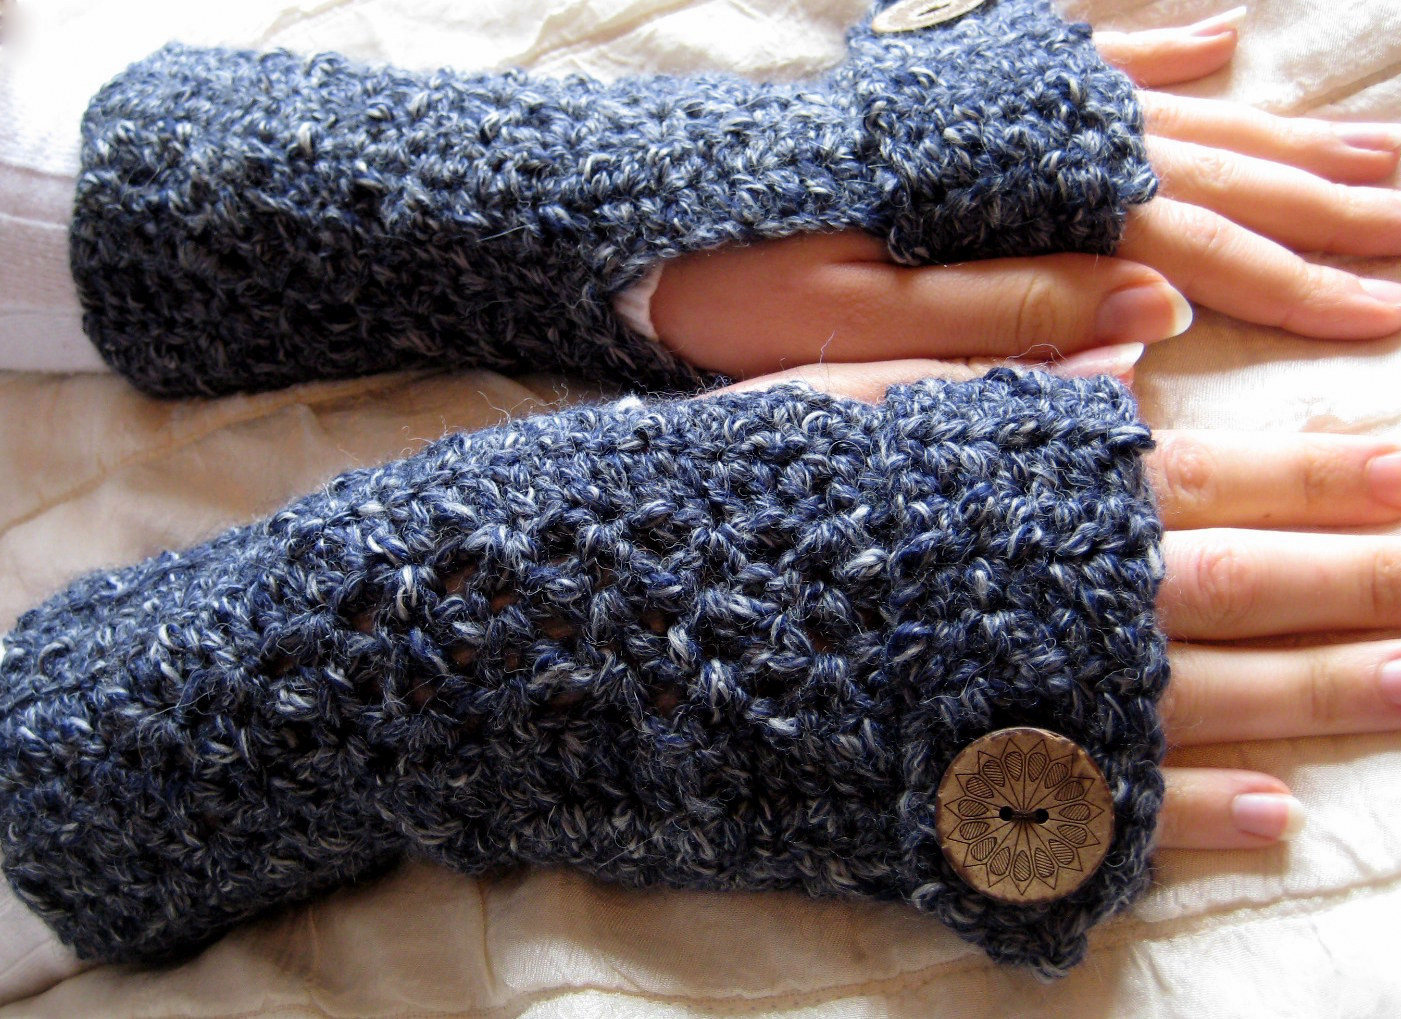 Crochet Gloves Luxury 17 Fingerless Gloves Crochet Patterns Of Amazing 45 Ideas Crochet Gloves